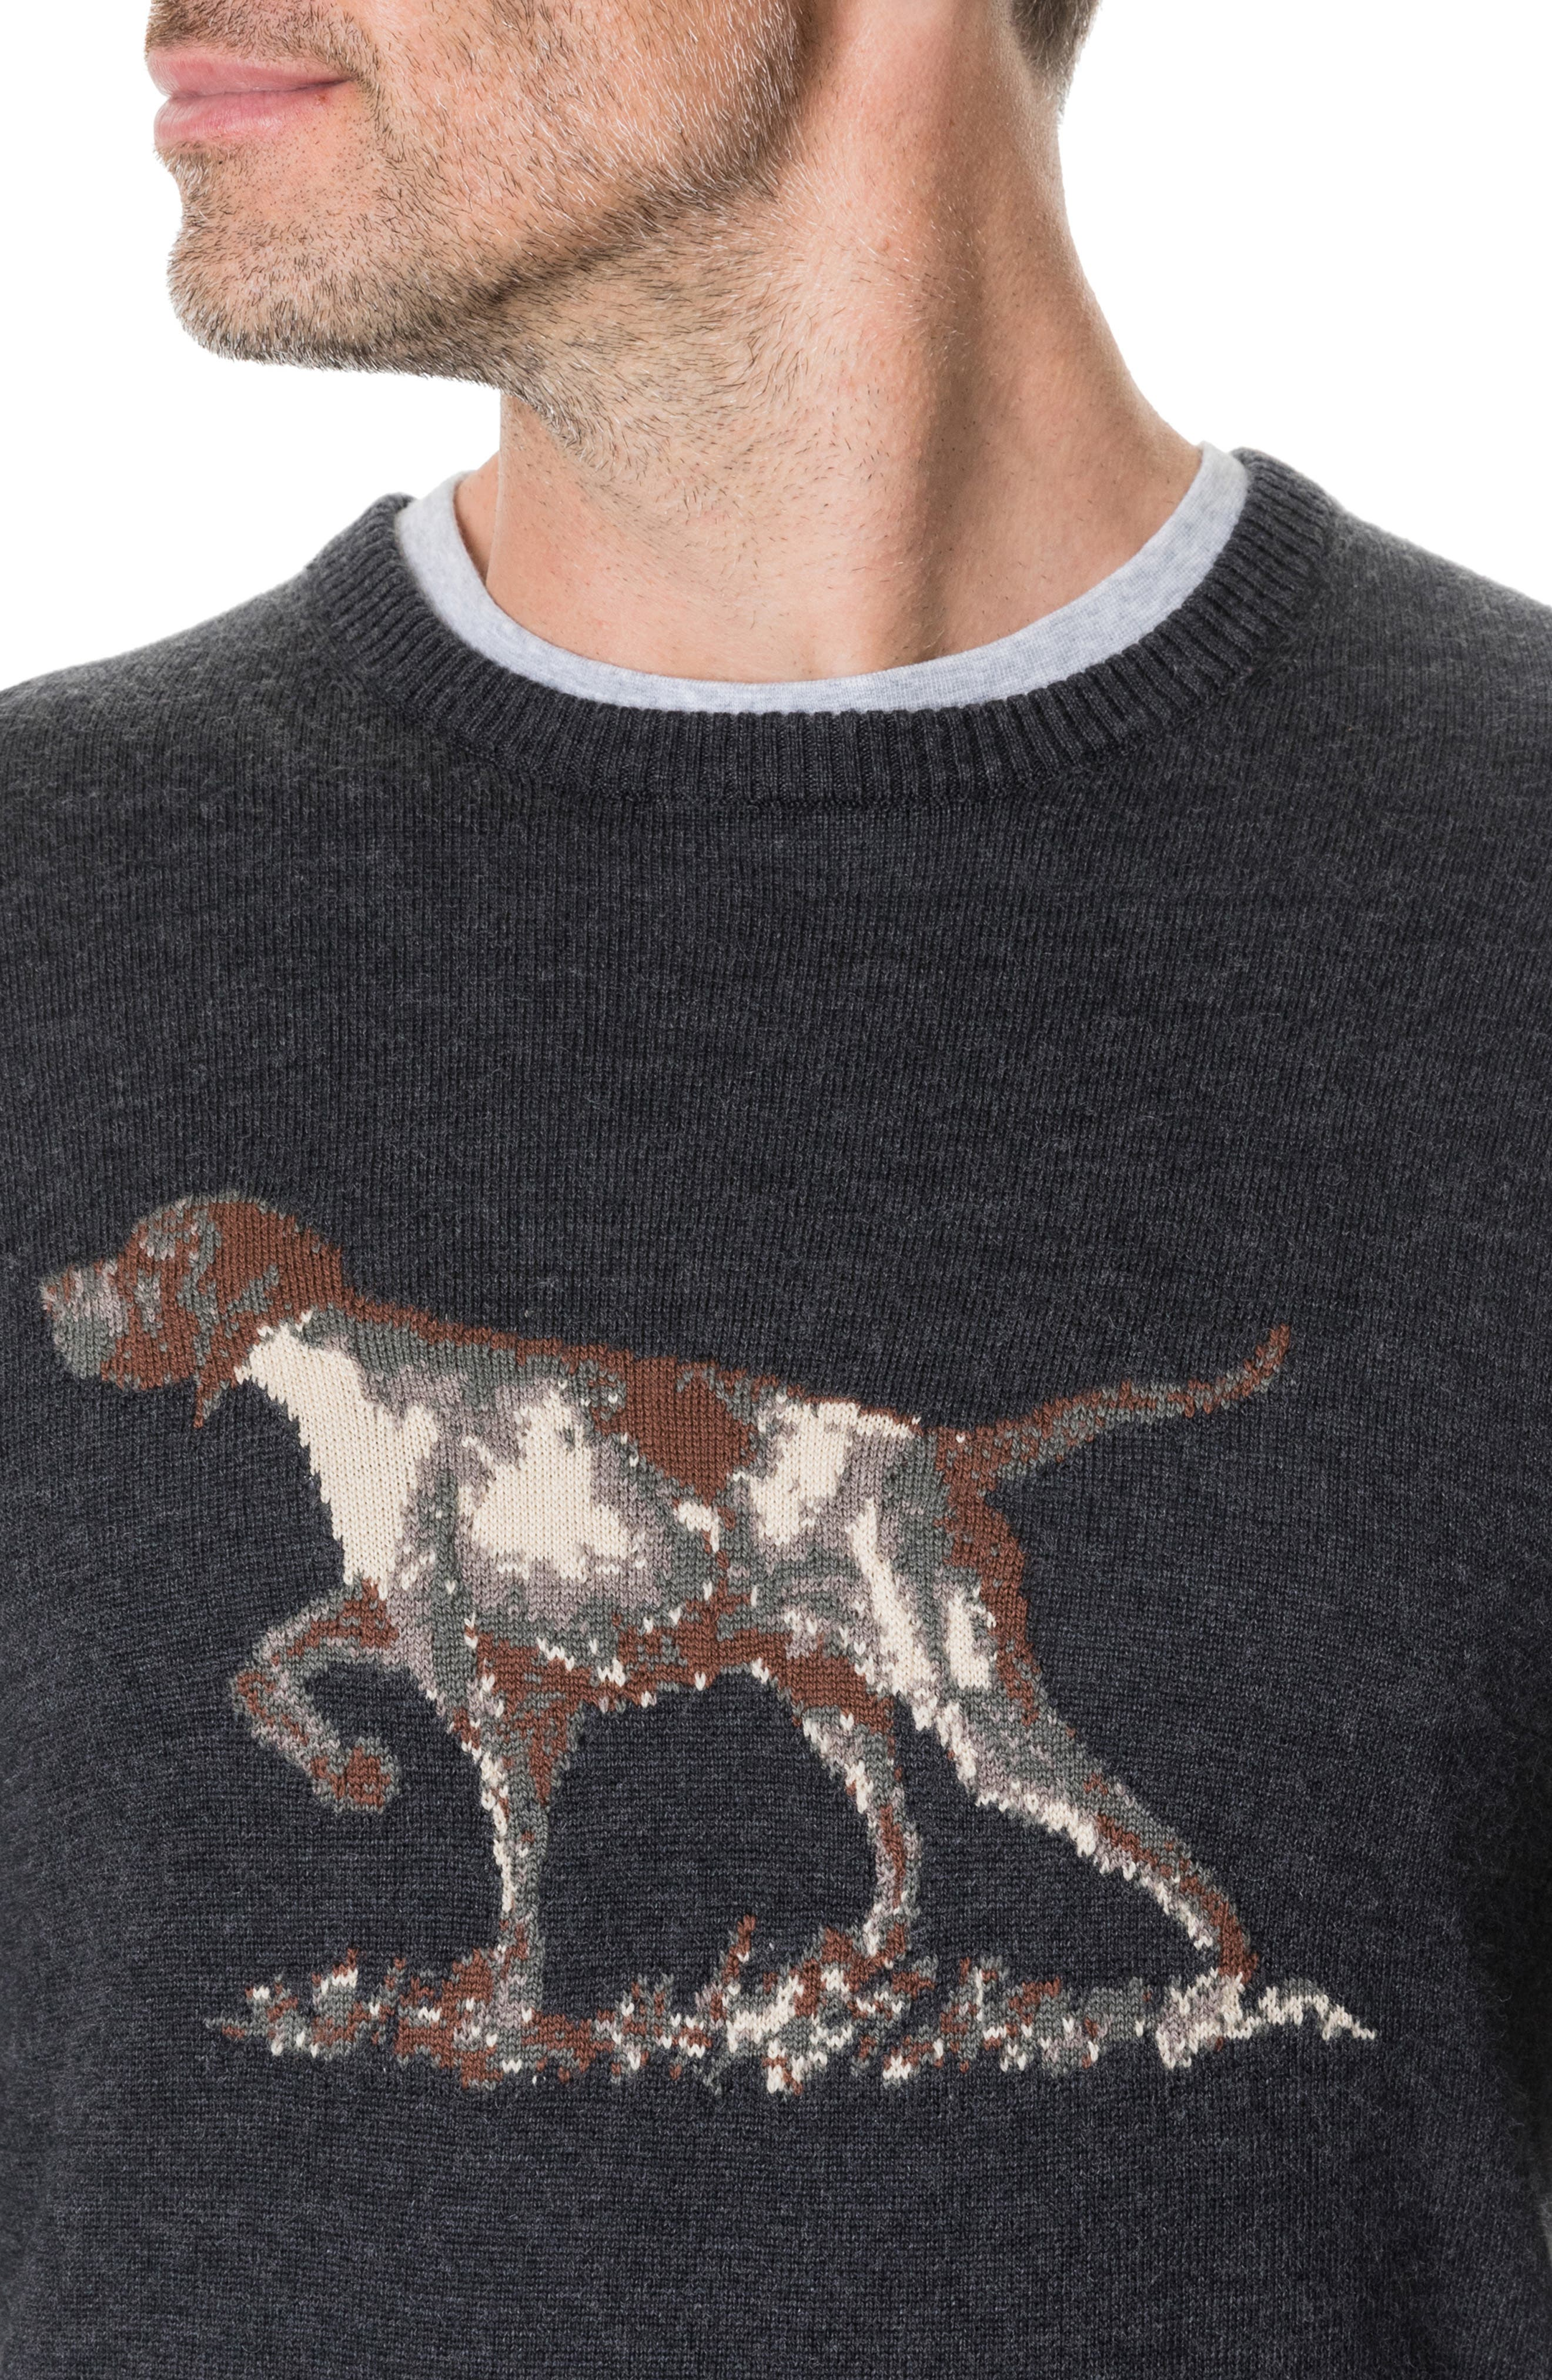 Calderwell Pointer Intarsia Knit Wool Sweater,                             Alternate thumbnail 4, color,                             CHARCOAL